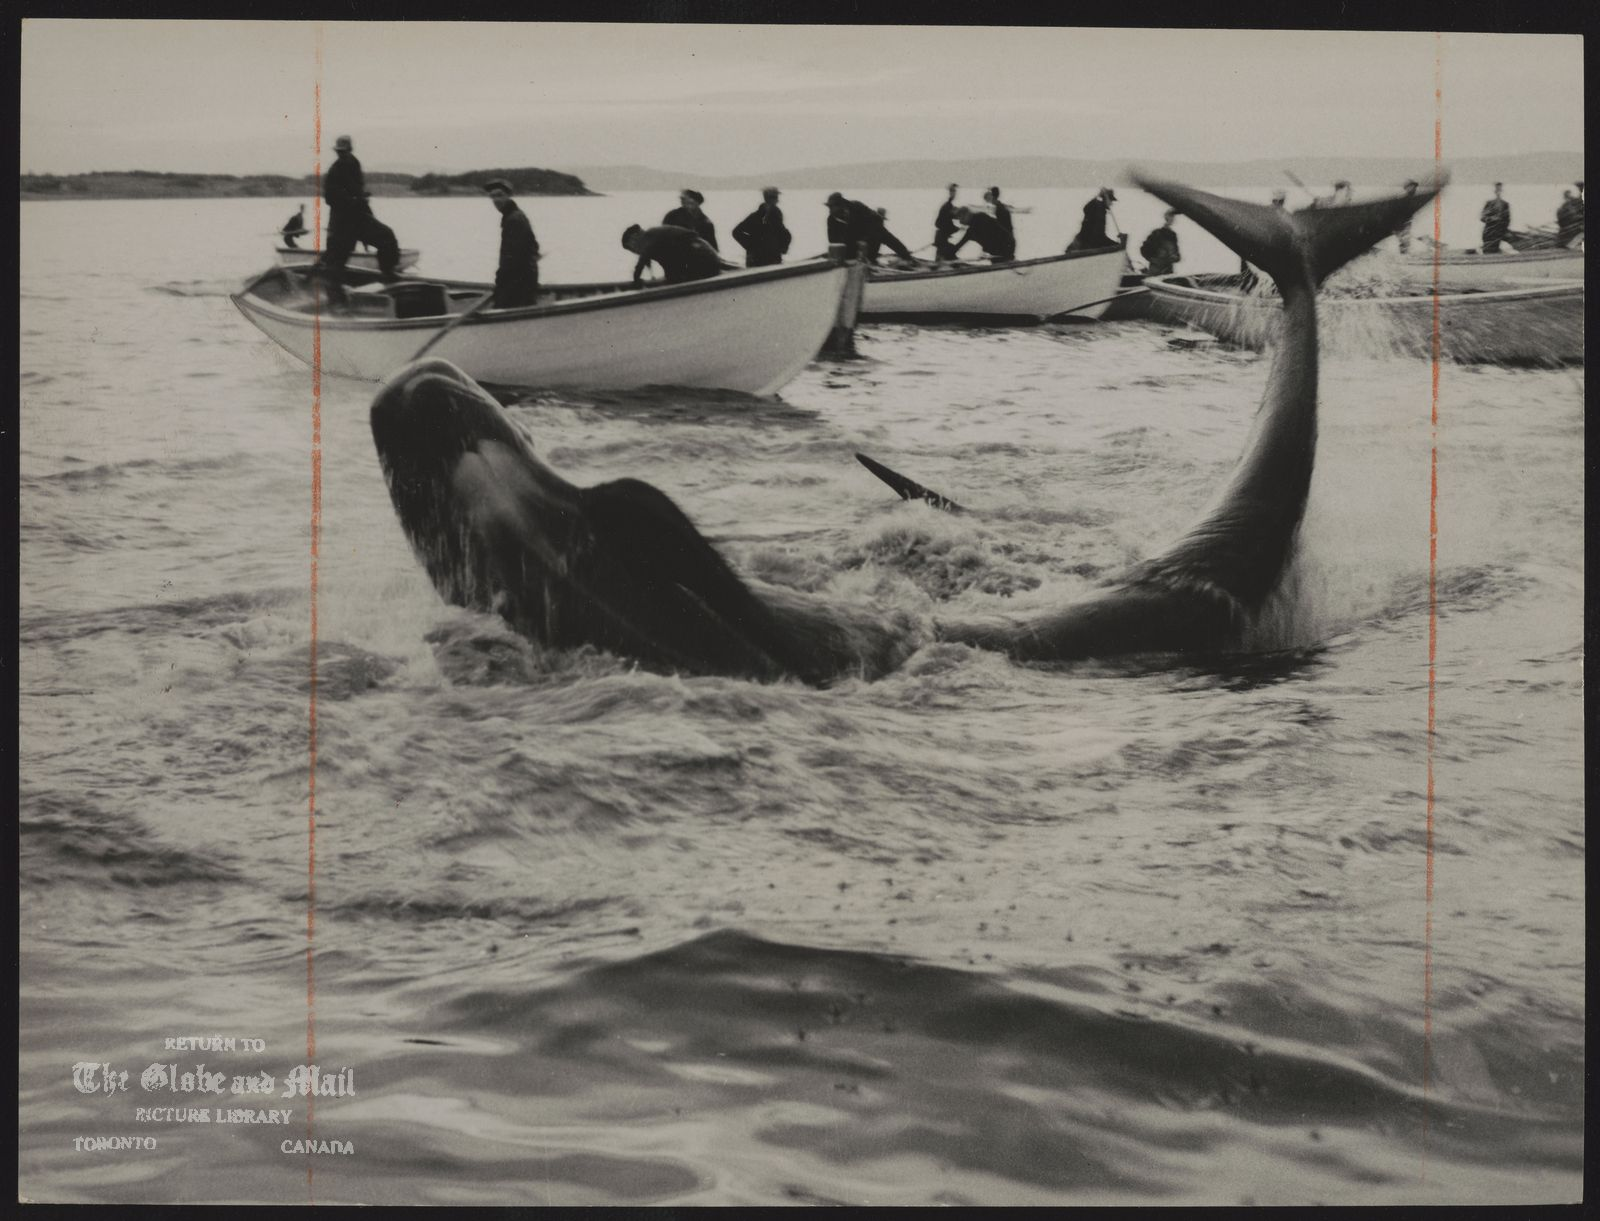 WHALING Huge whale twits and turns helplessly in shallows off Newfoundland.